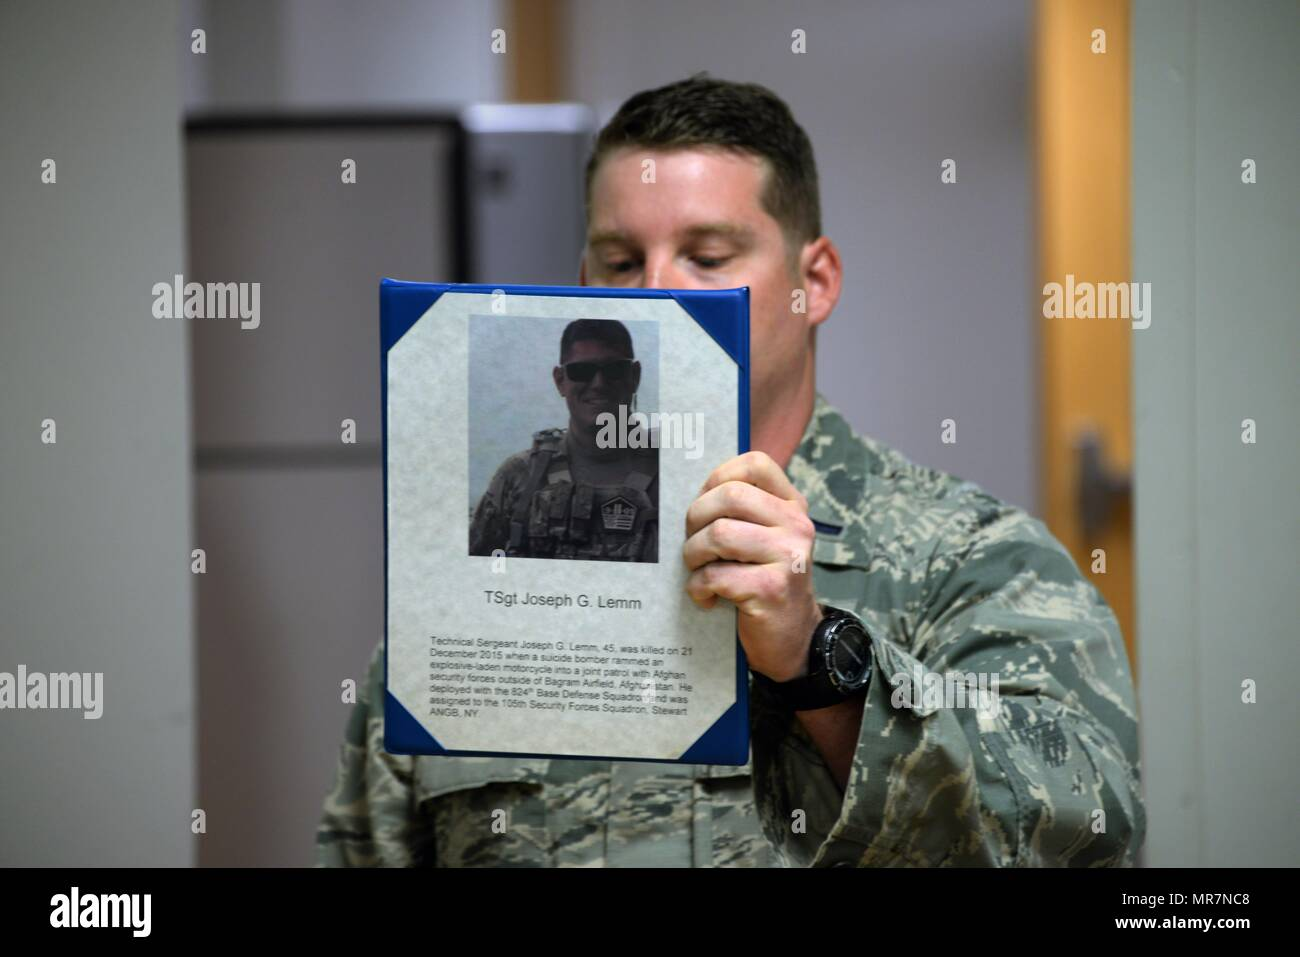 The 82nd Security Forces Squadron held a ceremony at Sheppard Air Force Base, Texas, May 17, 2017, which honored defenders who have made the ultimate sacrifice serving their country. 1st Lt. Bryan Duggan, 82nd SFS operations officer, holds up a picture of Tech. Sgt. Joseph Lemm, a fellow defender who was killed on Dec. 21, 2015, by a suicide bomber. Lemm was assigned to the 105th SFS at Stewart Air National Guard Base, New York. (U.S. Air Force photo by Senior Airman Robert L. McIlrath) - Stock Image